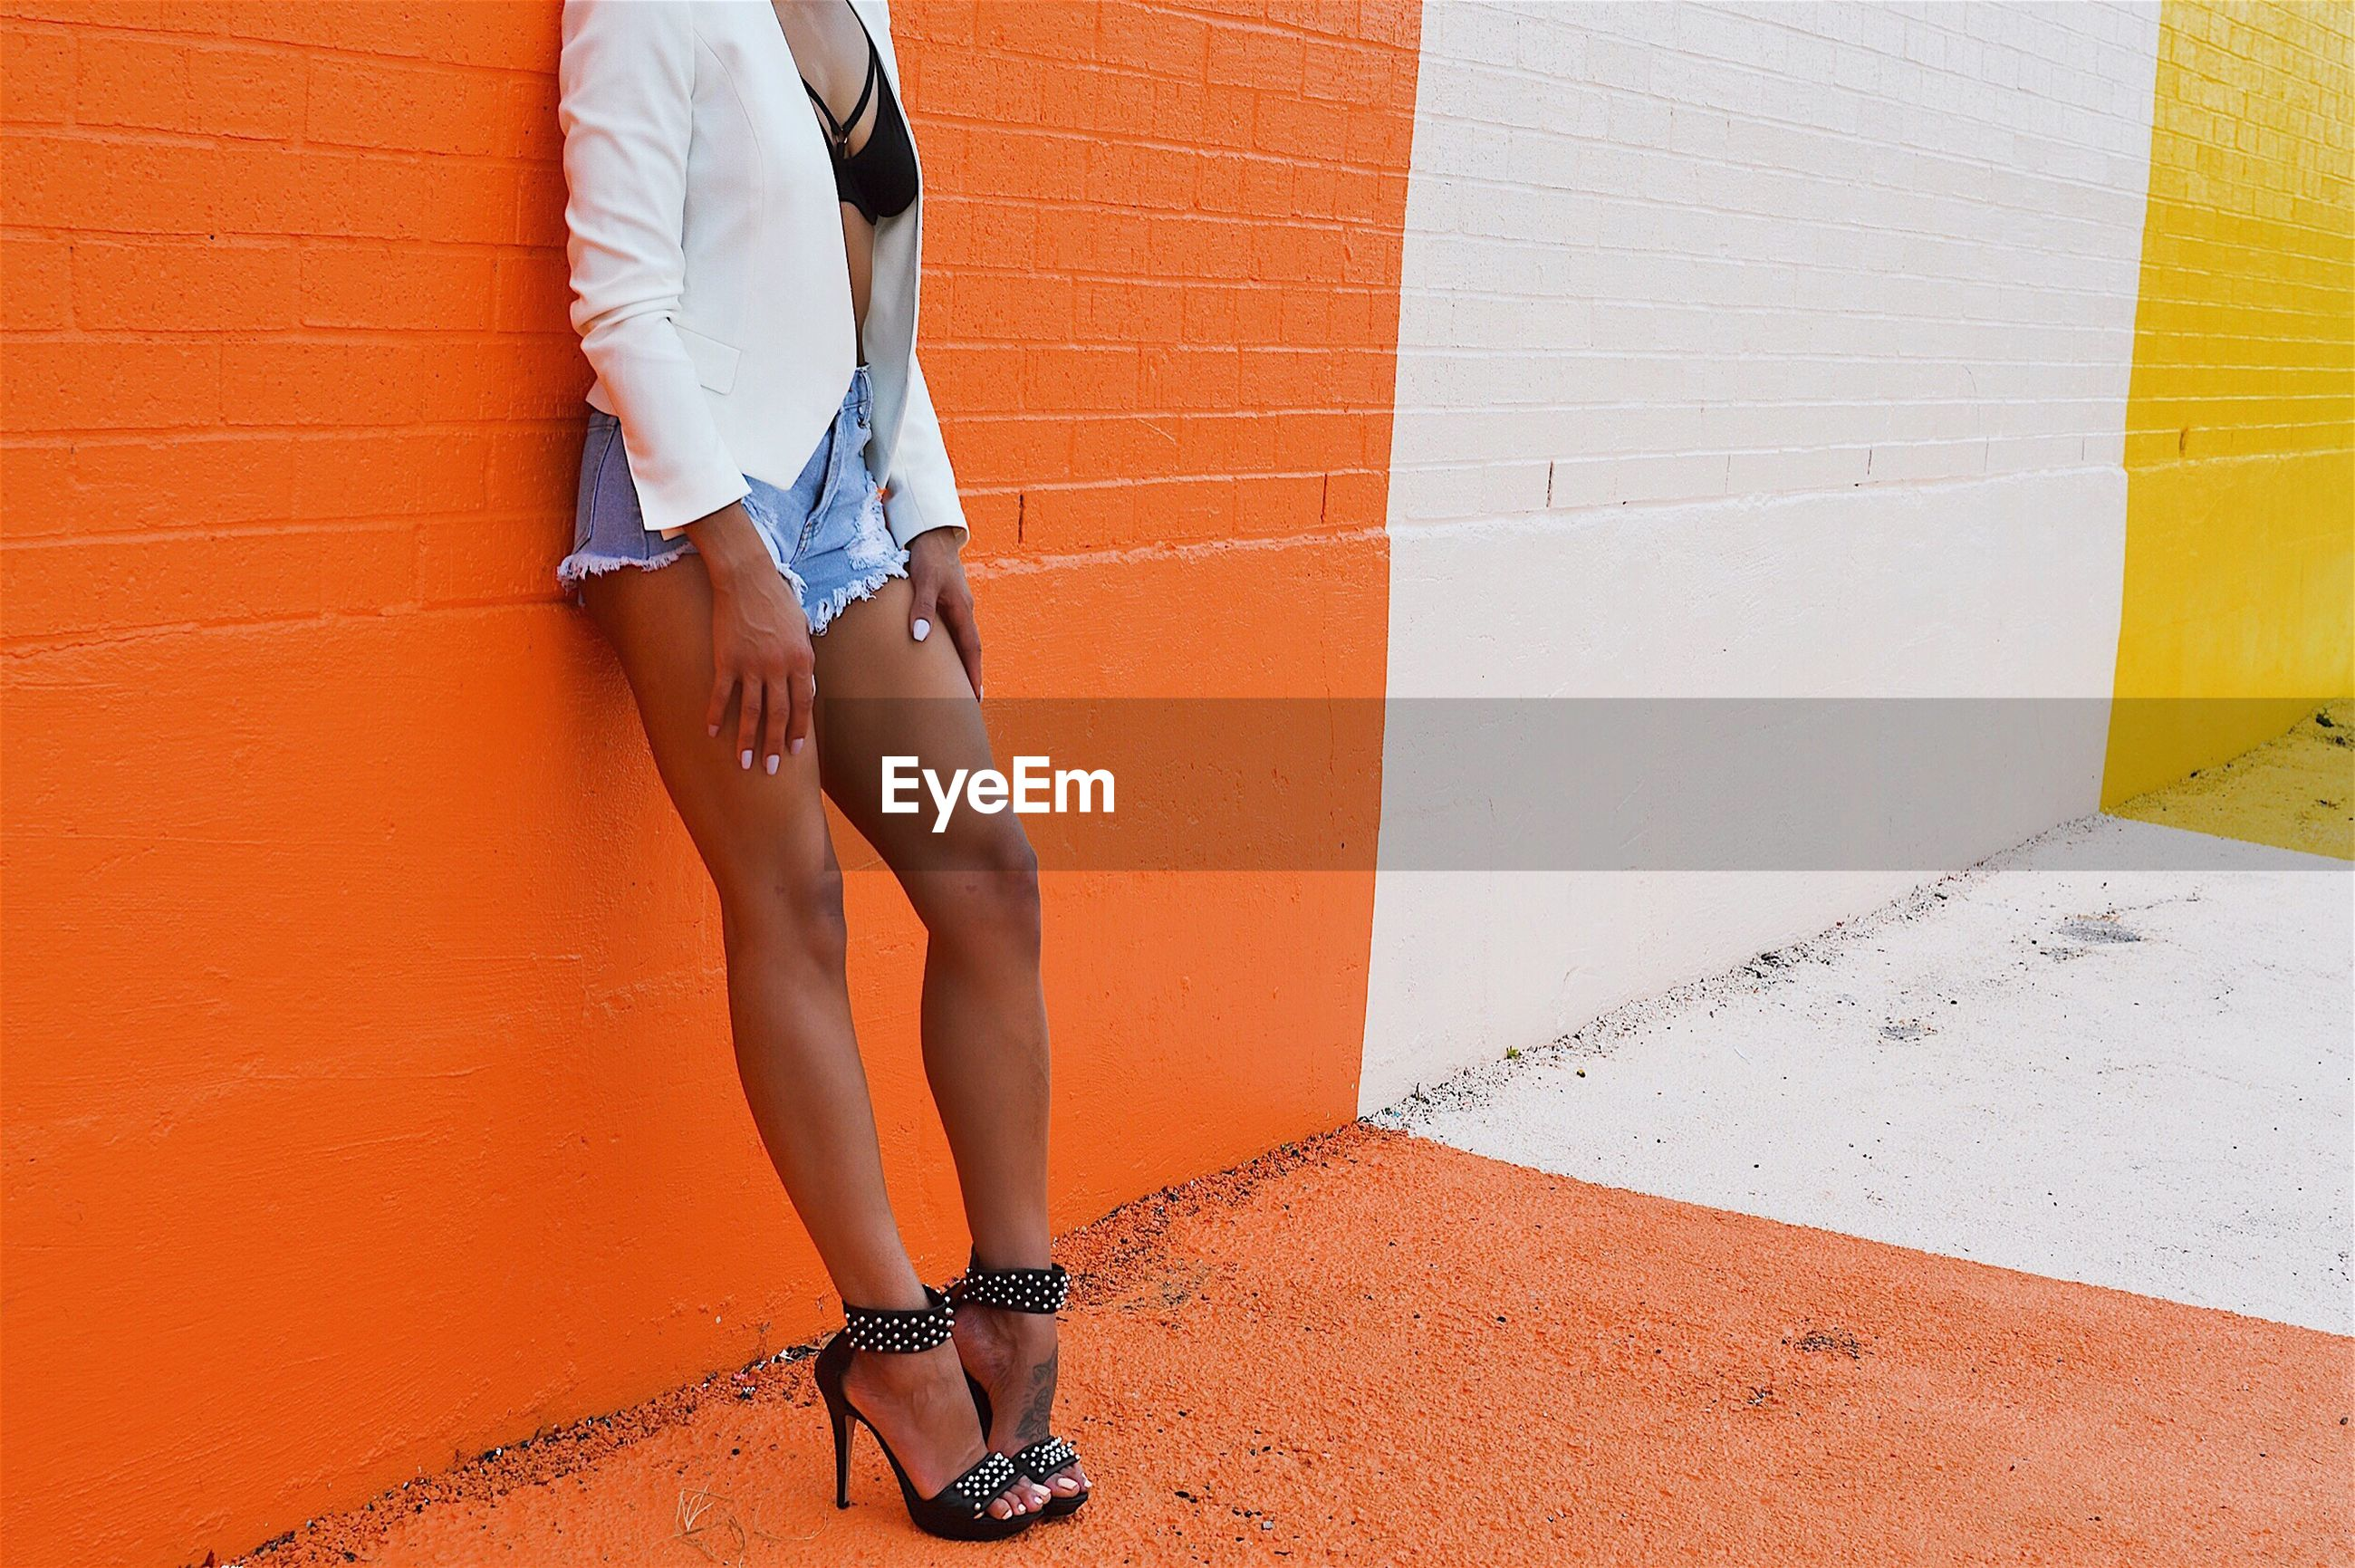 Low section of woman in hot pants leaning on orange wall